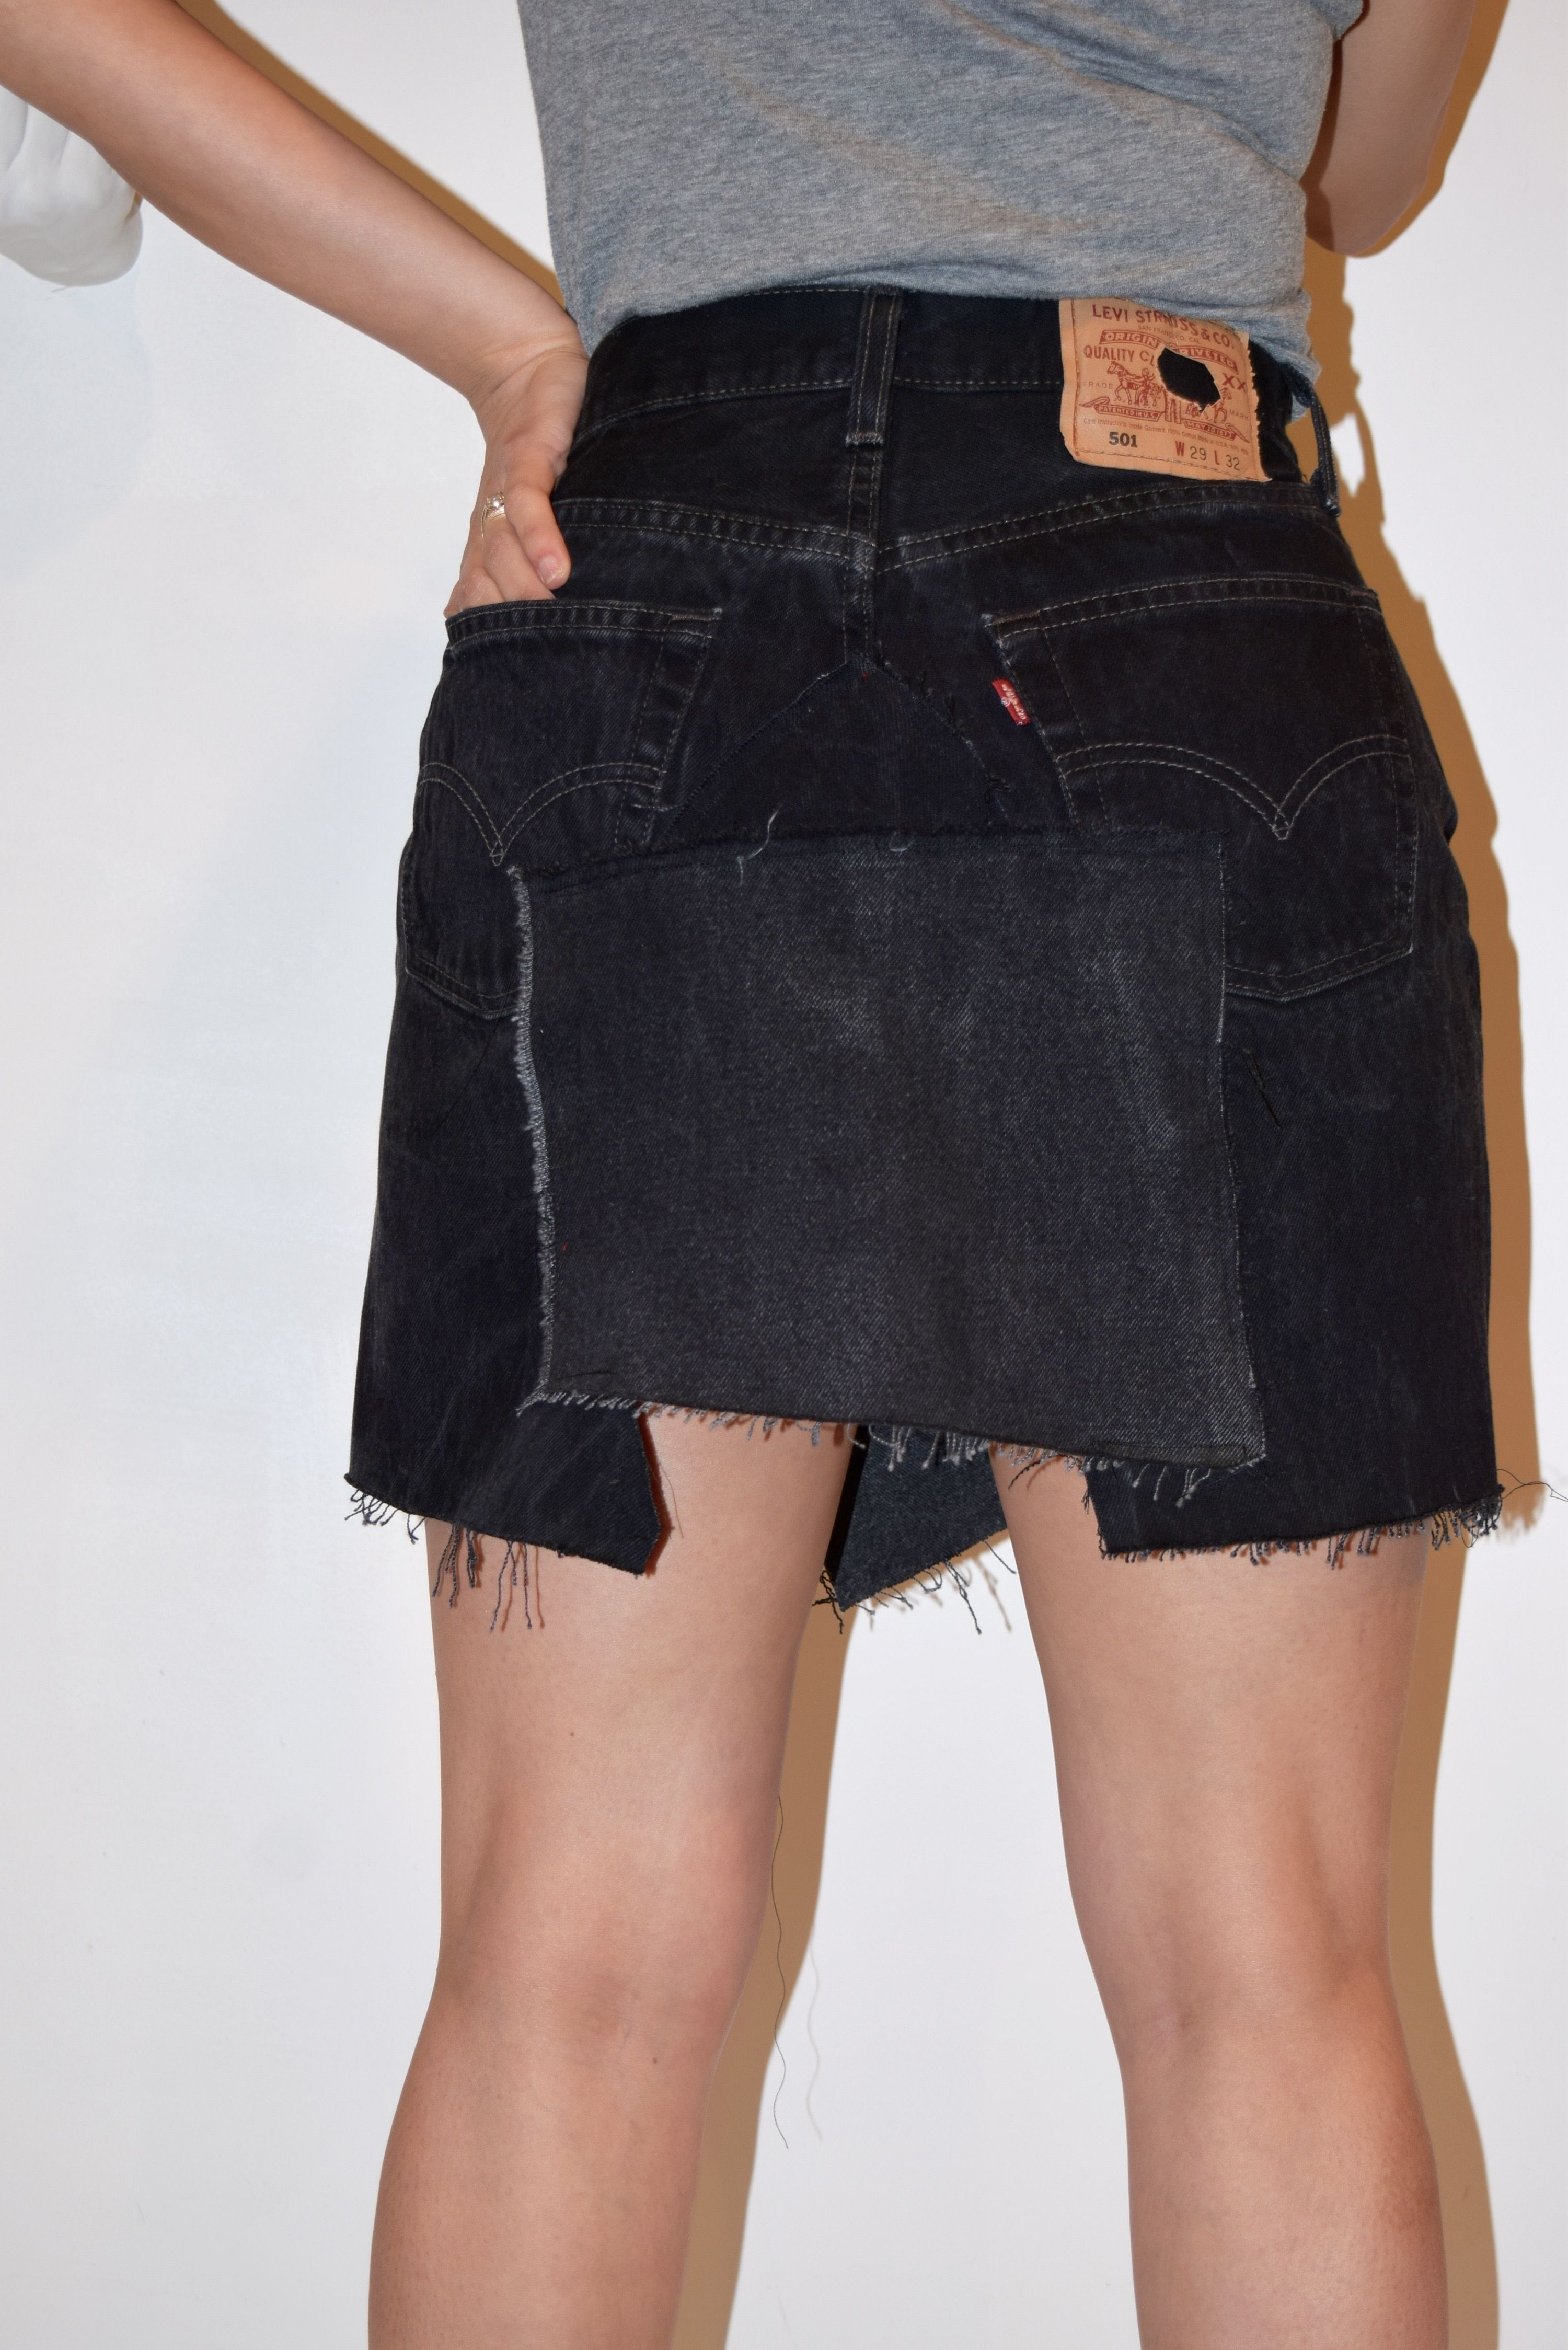 Long Levi denim skirts pictures best photo